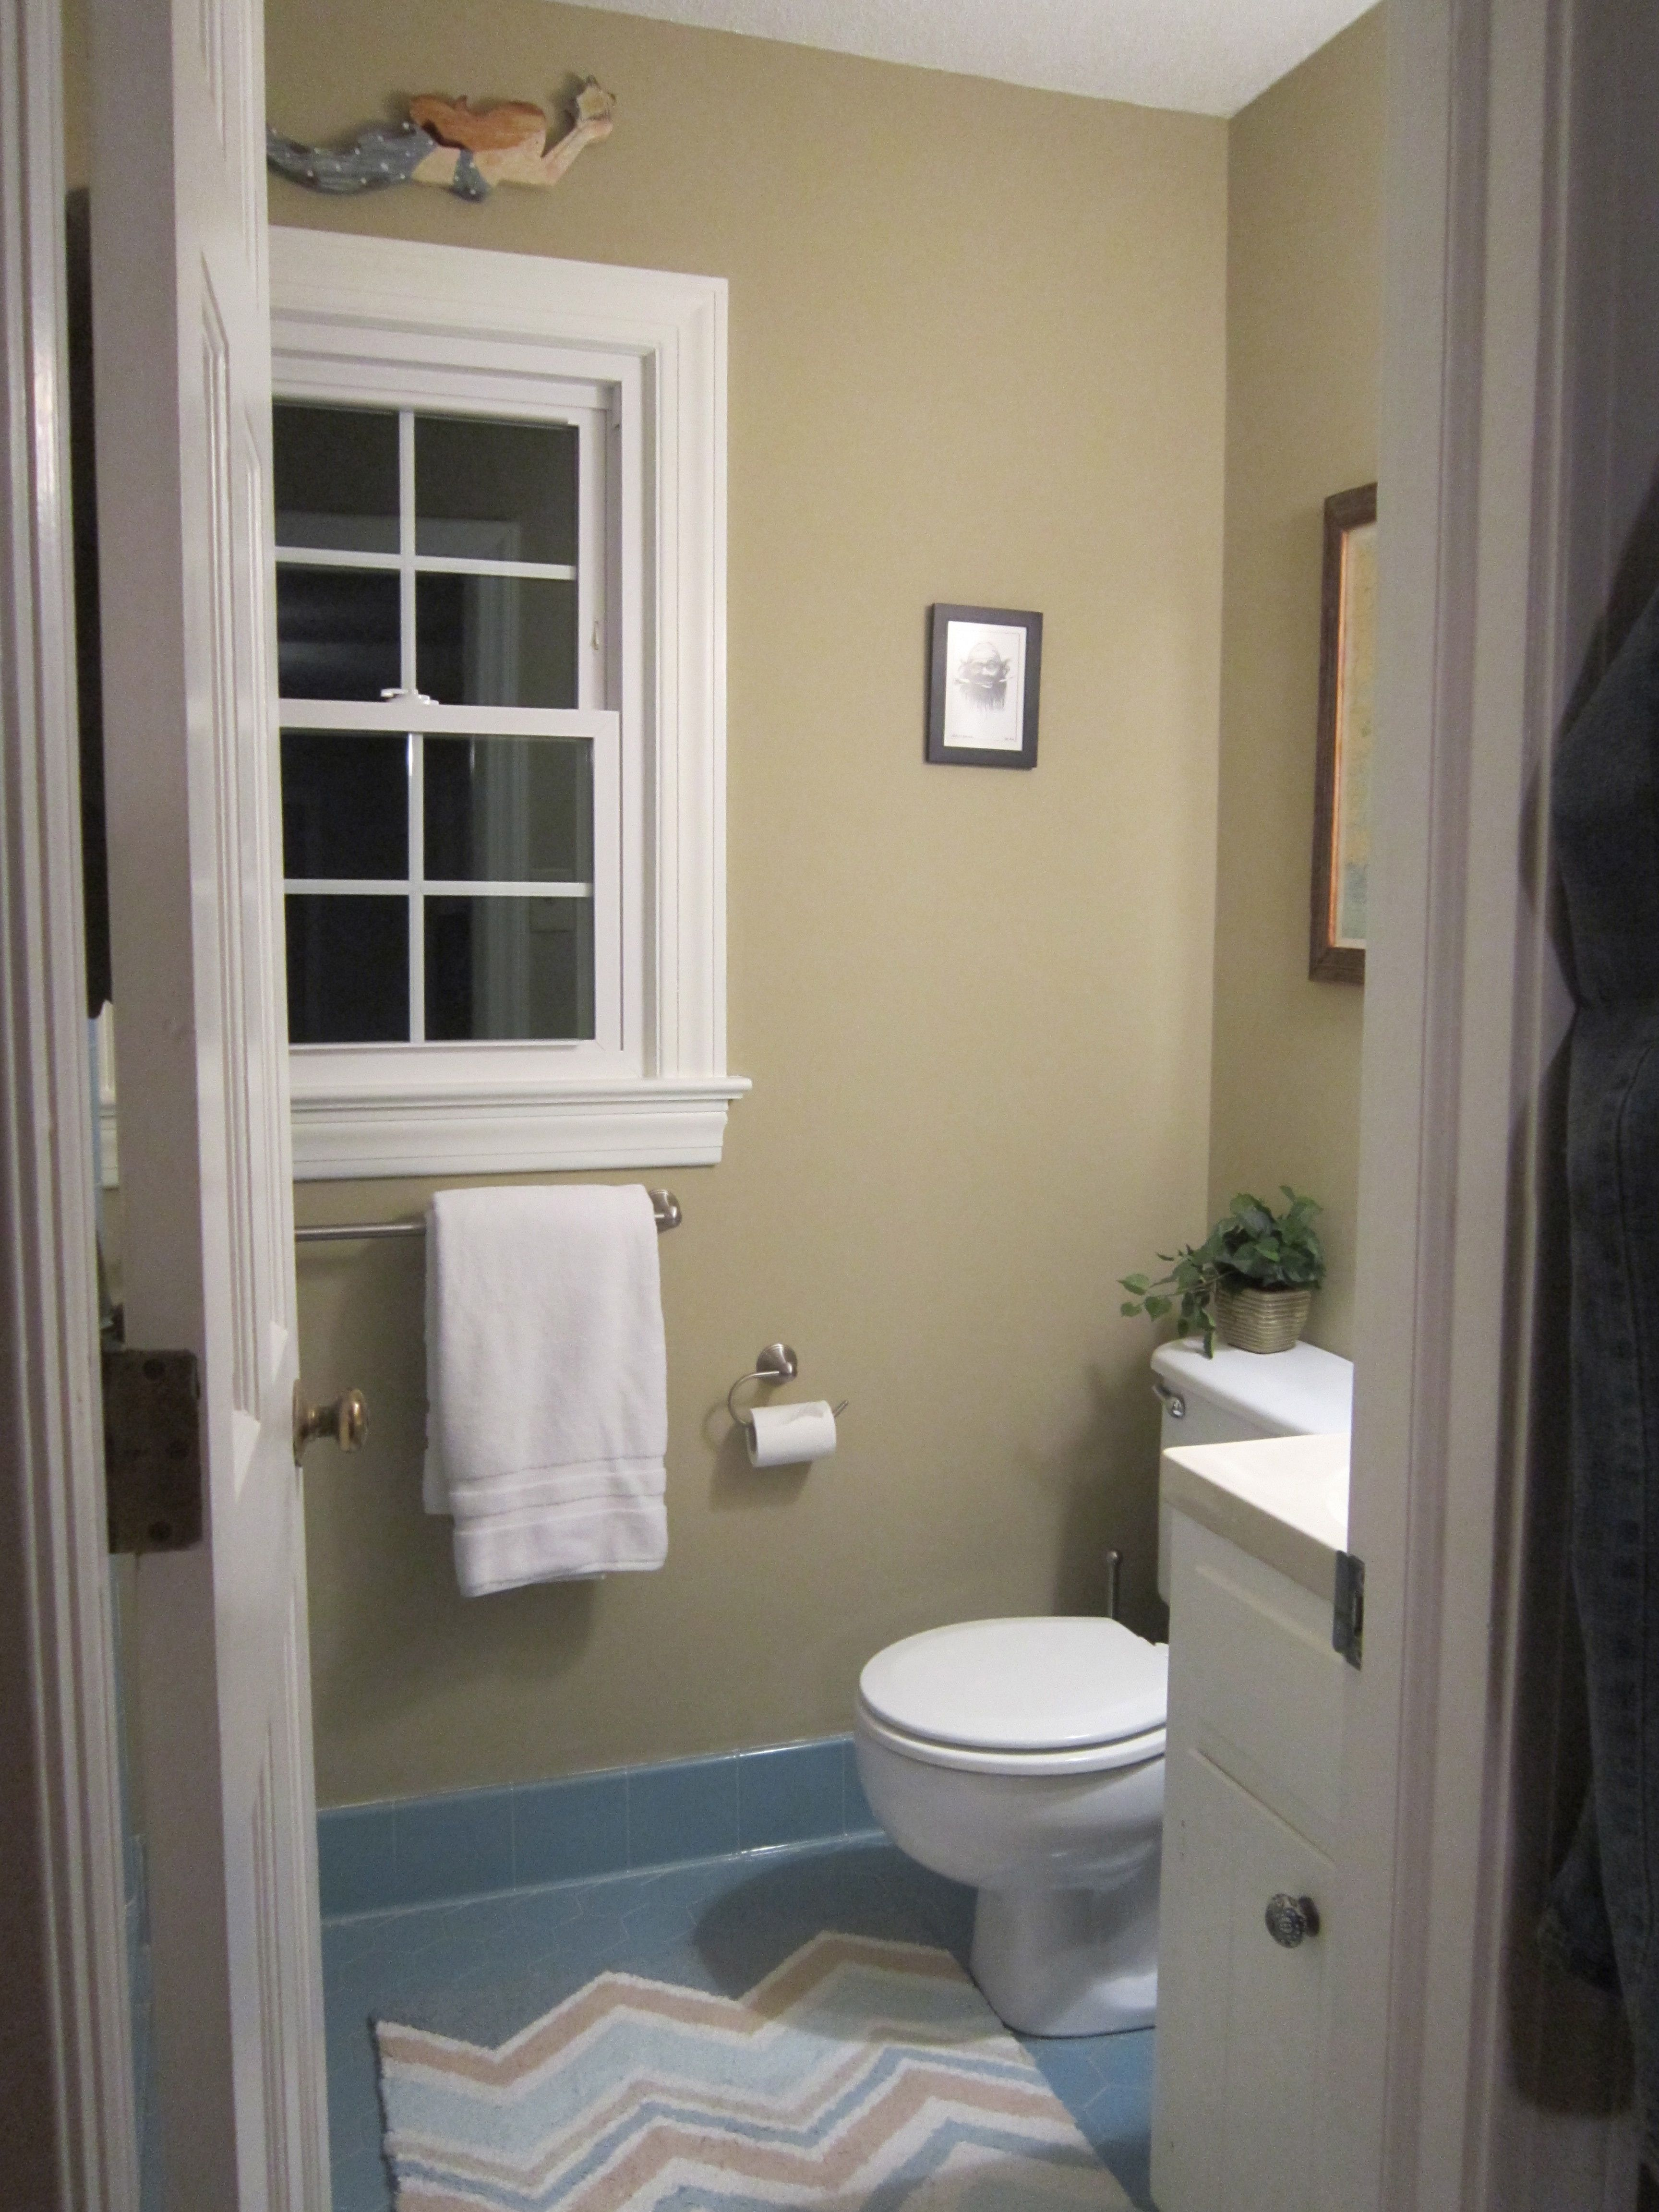 My house wednesday inspiration benjamin moore quot gentleman s gray - Master Bath After To Tone Down The Smurf Blue Tile I Chose Benjamin